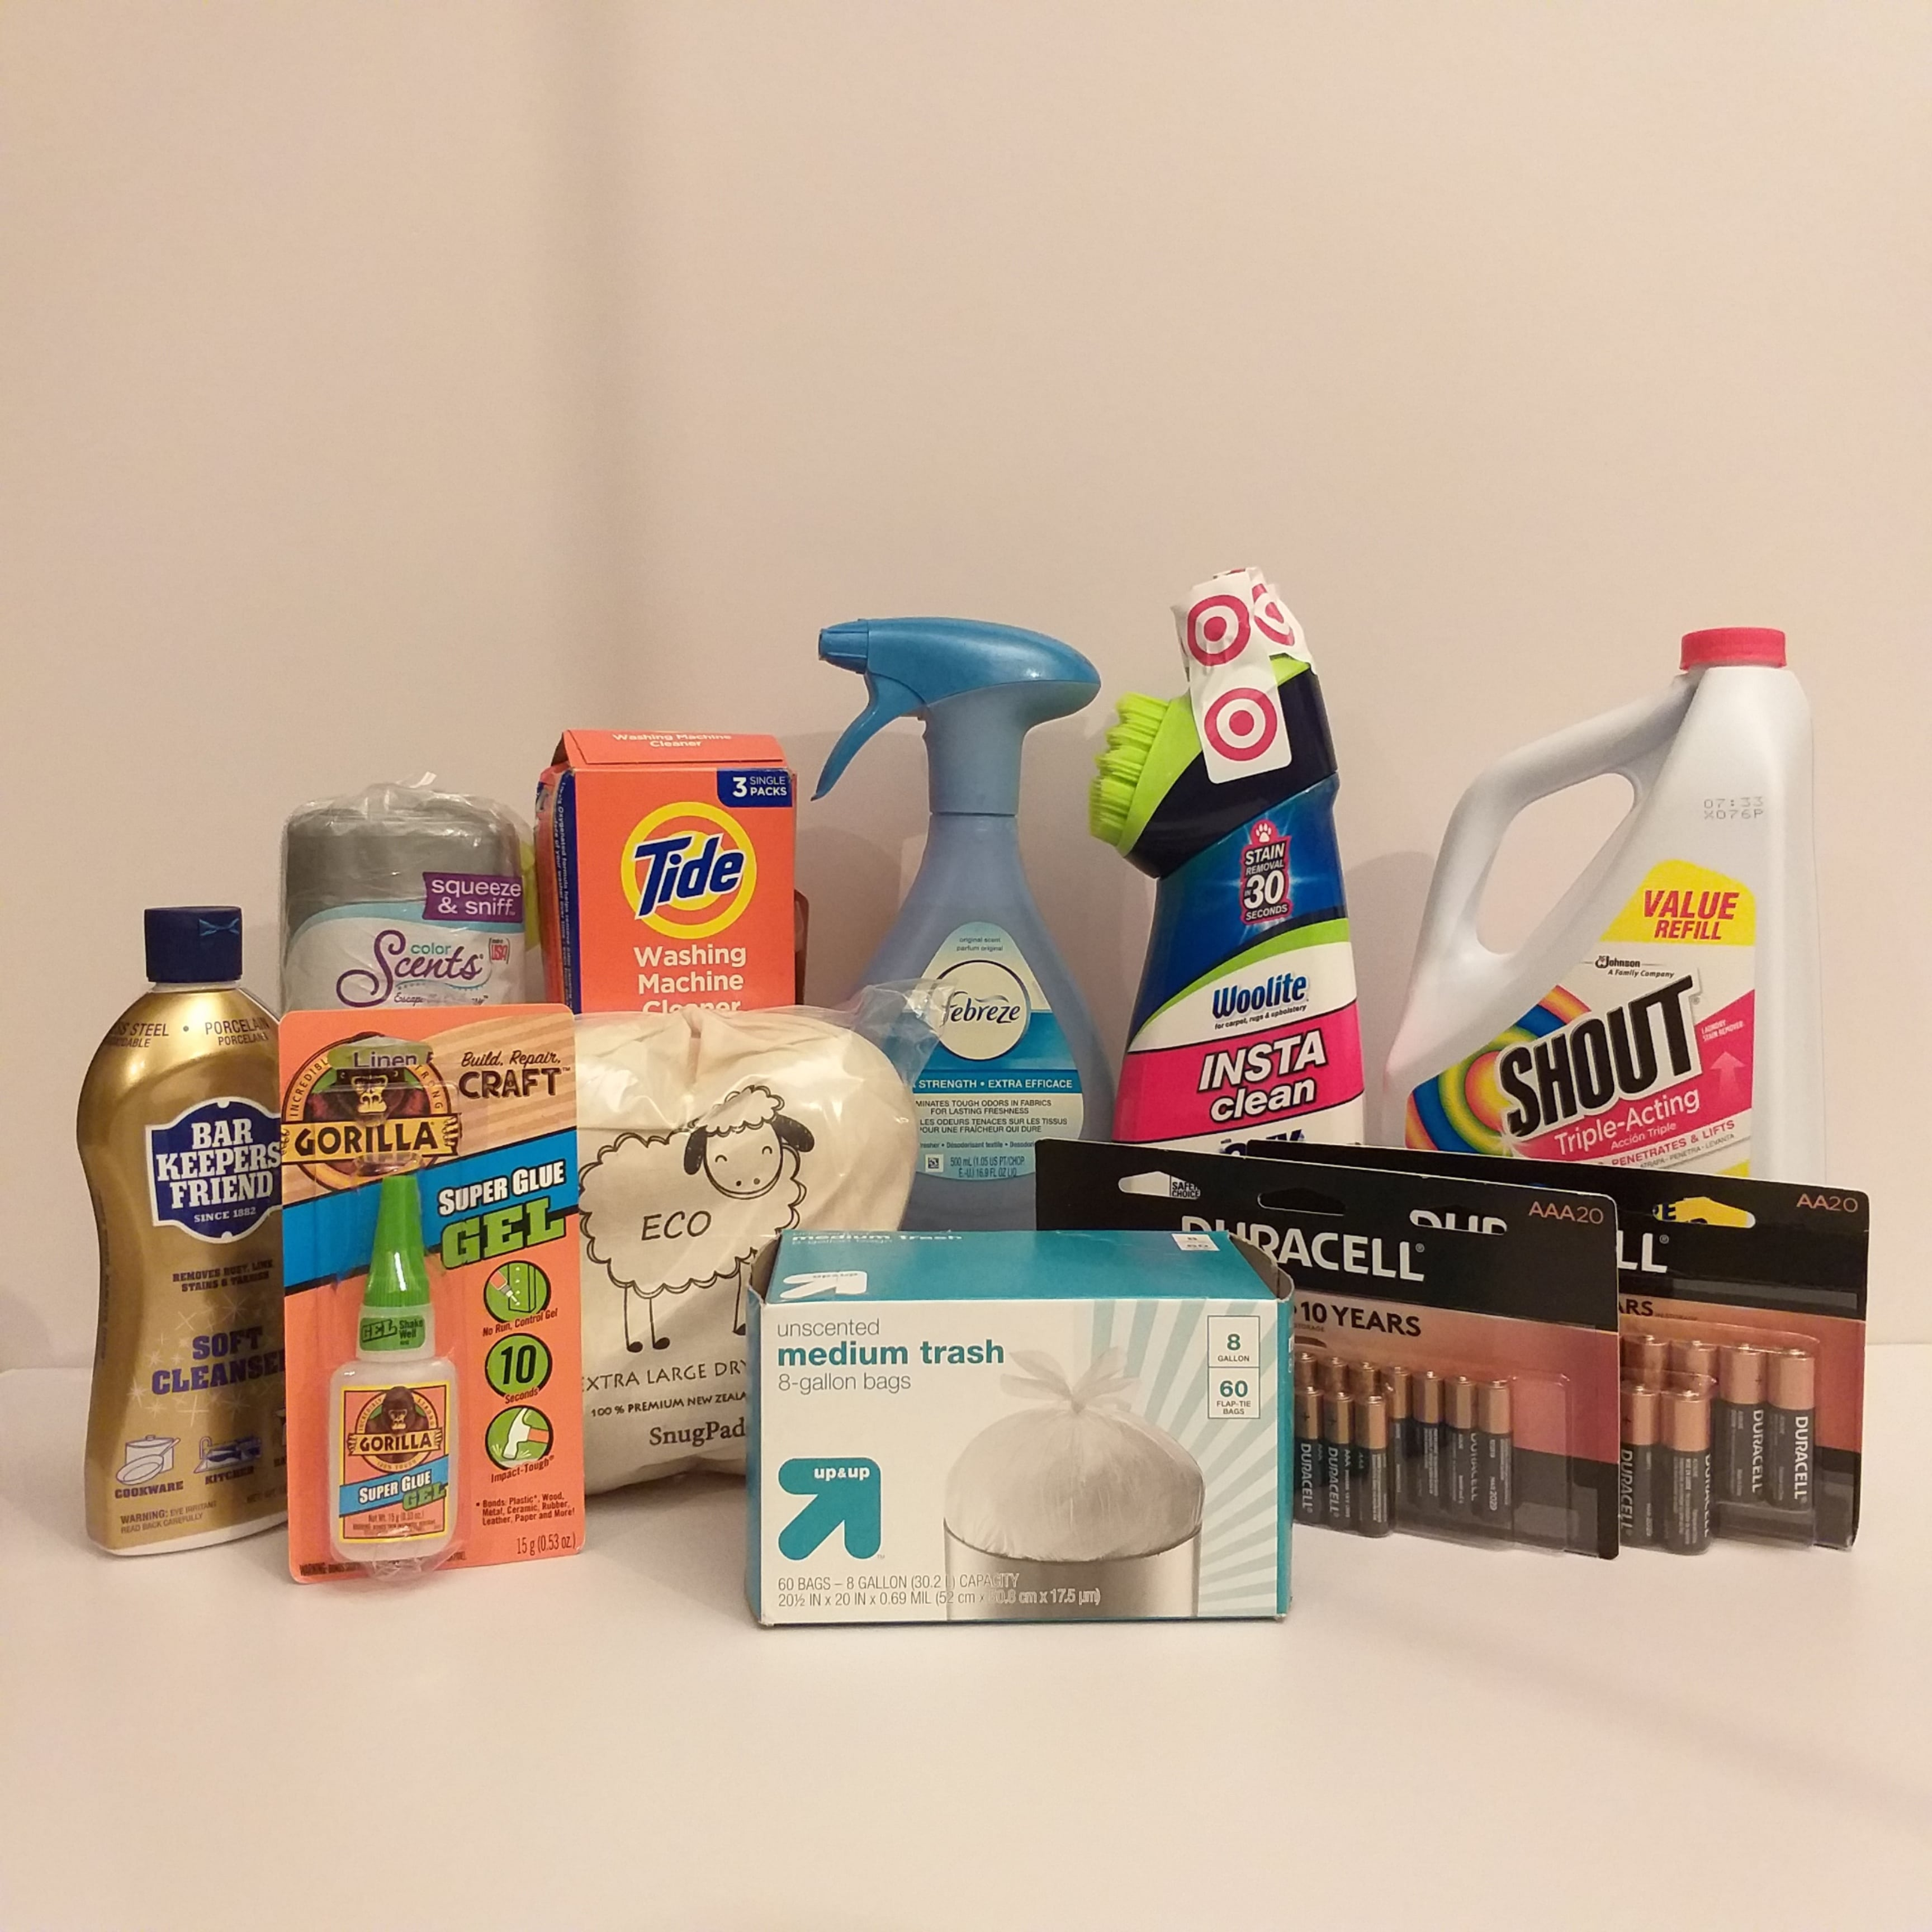 products-purchased-household-products-02